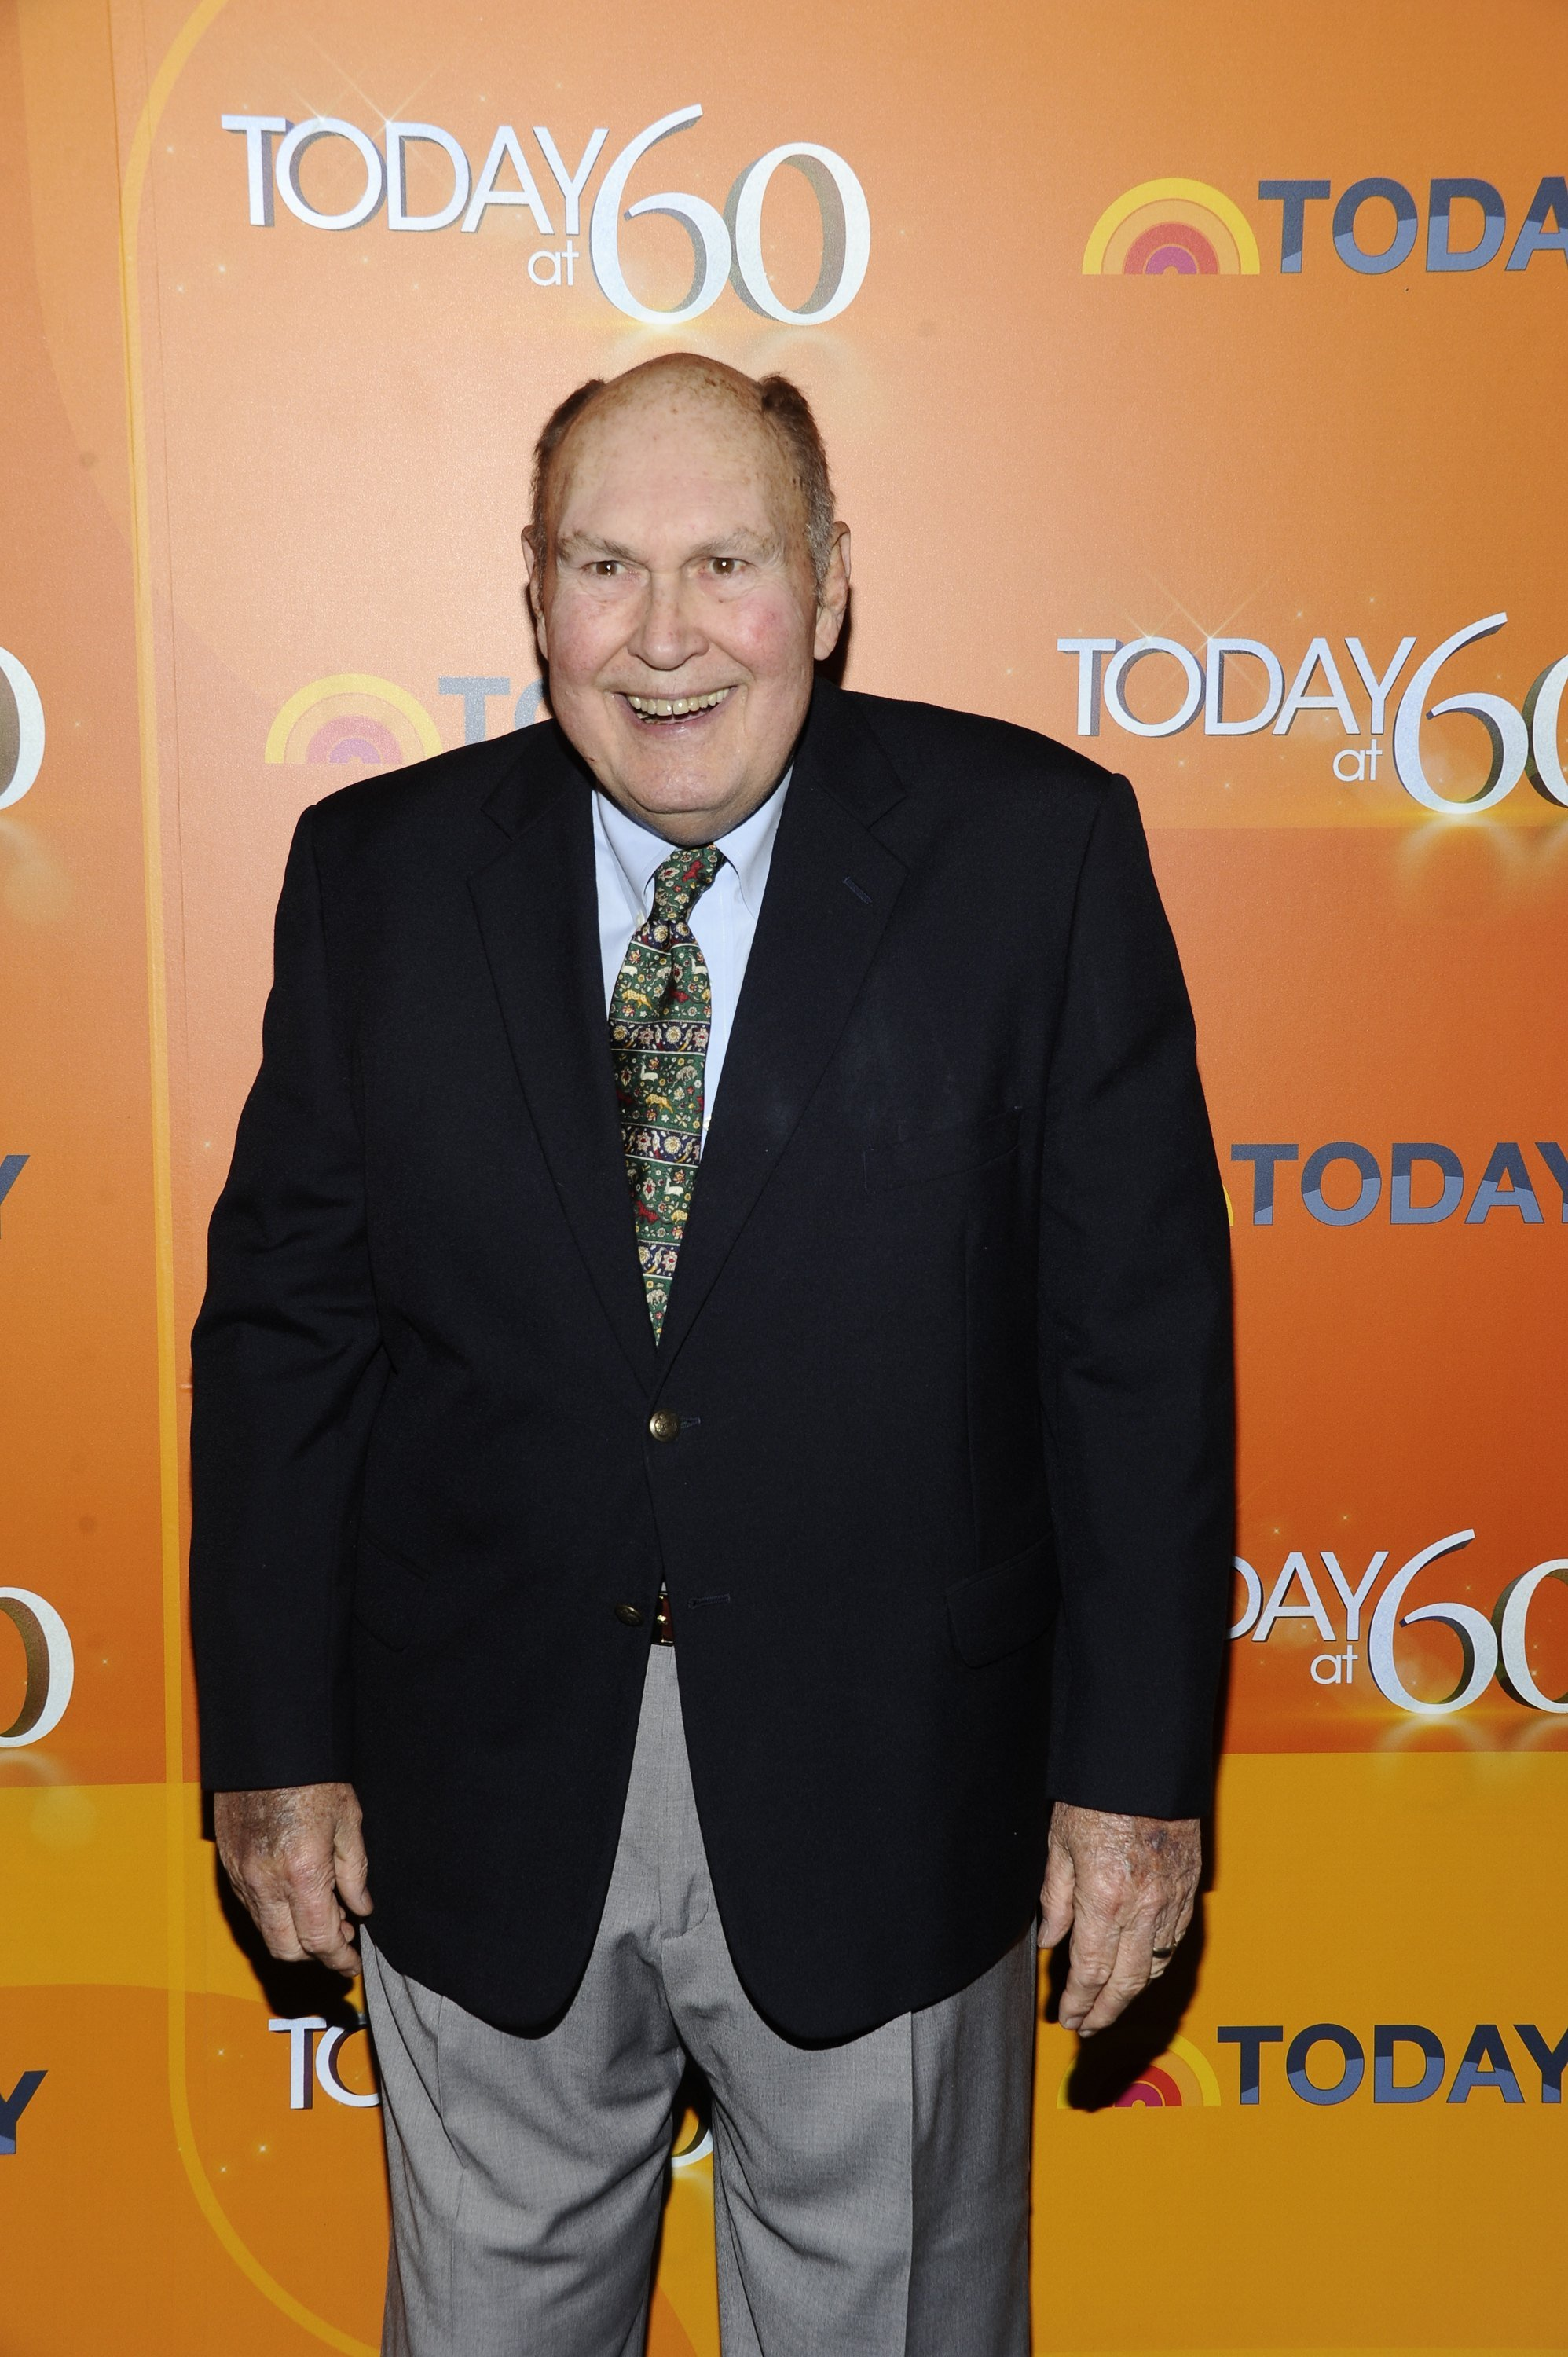 Willard Scott at the Edison Ballroom in New York to celebrate the 60th anniversary of the TODAY show on January 12, 2012 | Photo: GettyImages